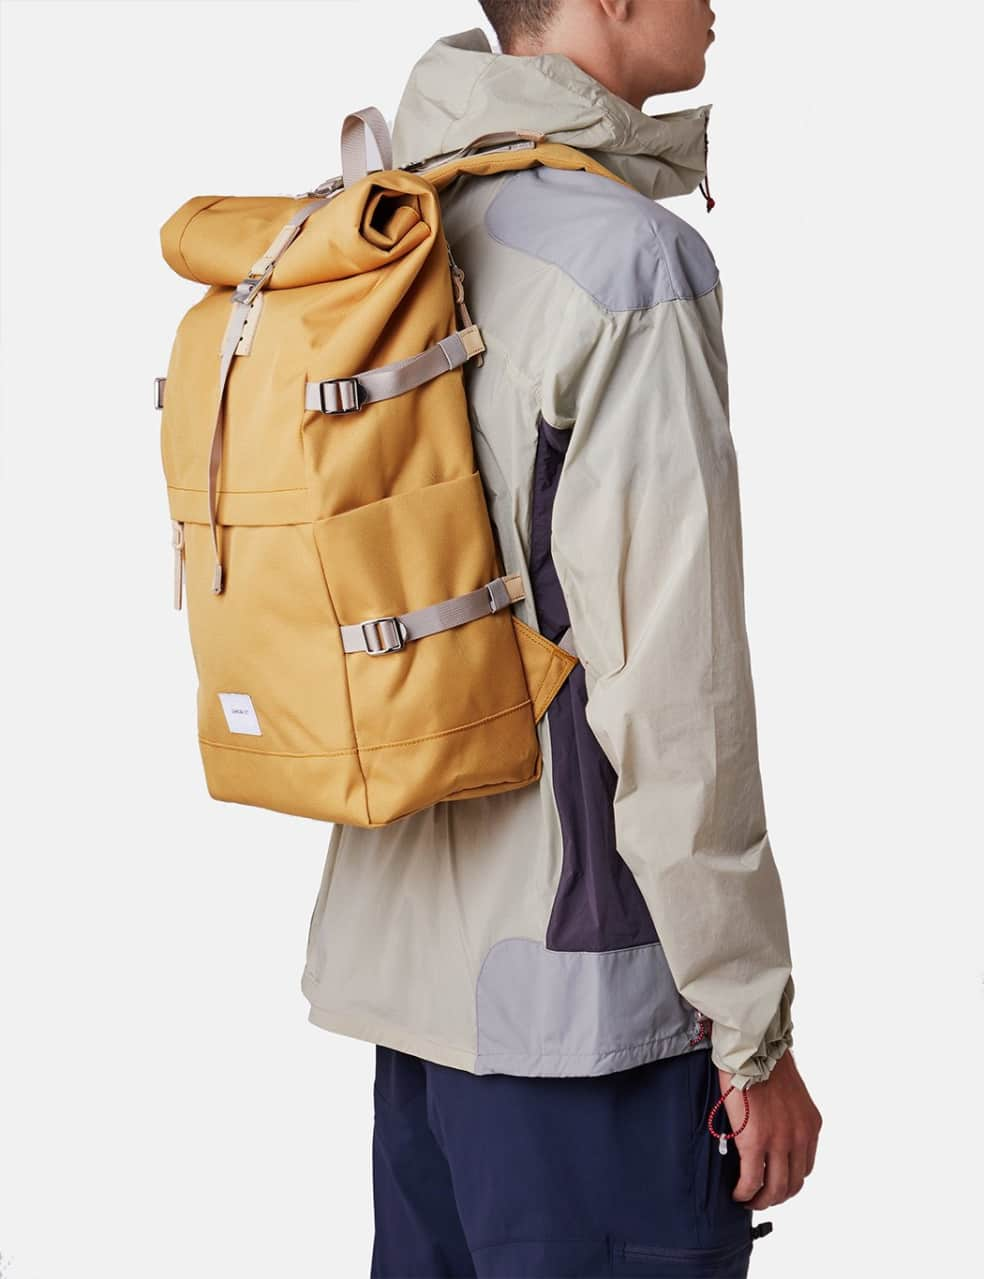 Sandqvist Bernt Backpack - Yellow/Natural Leather | Backpack by Sandqvist 2